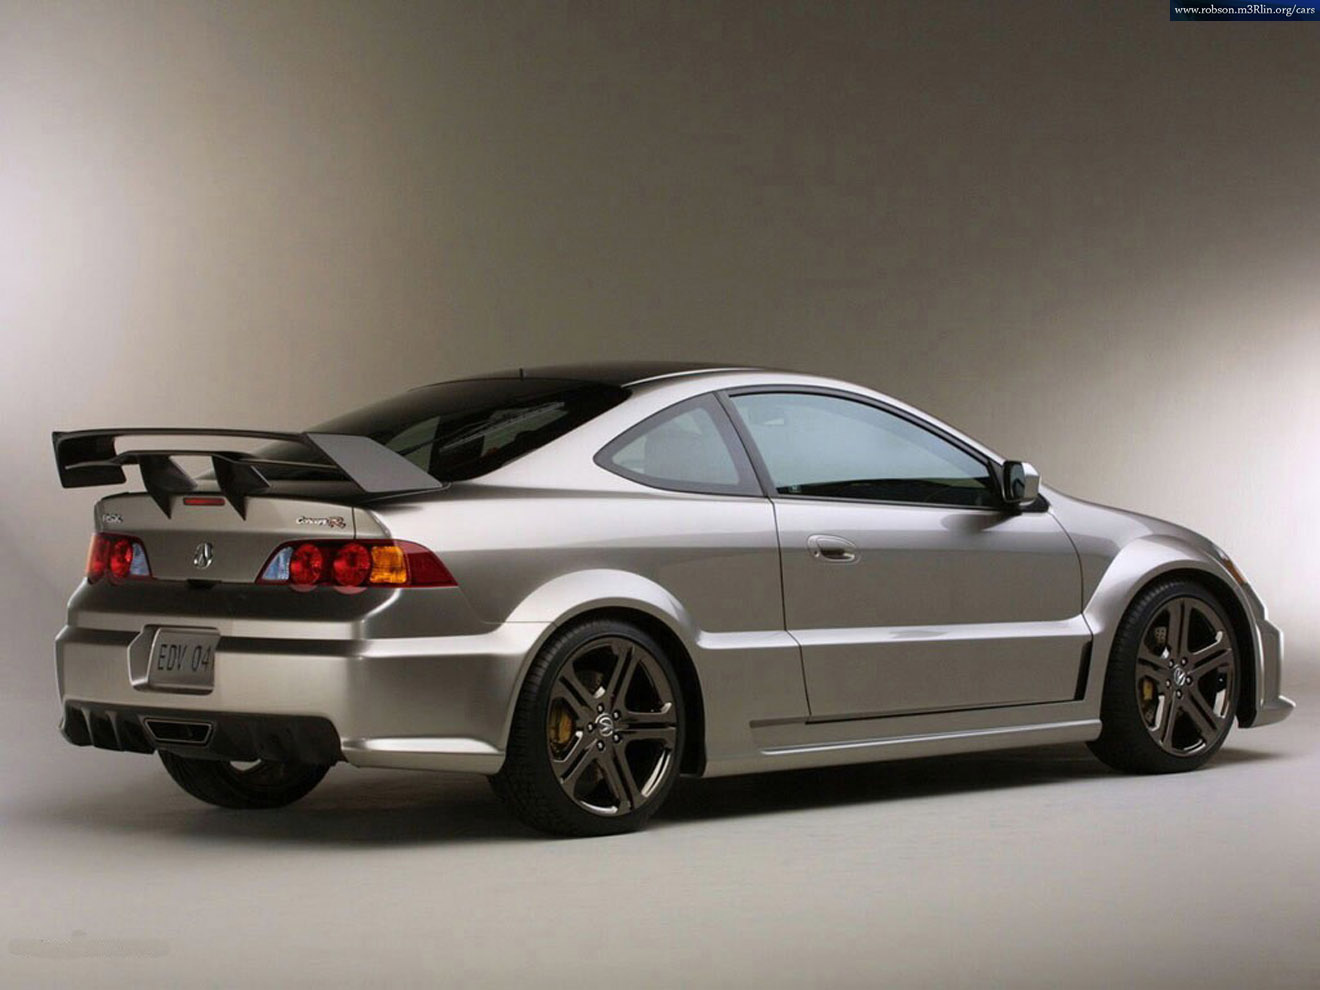 Acura rsx images | Latest Cars Models